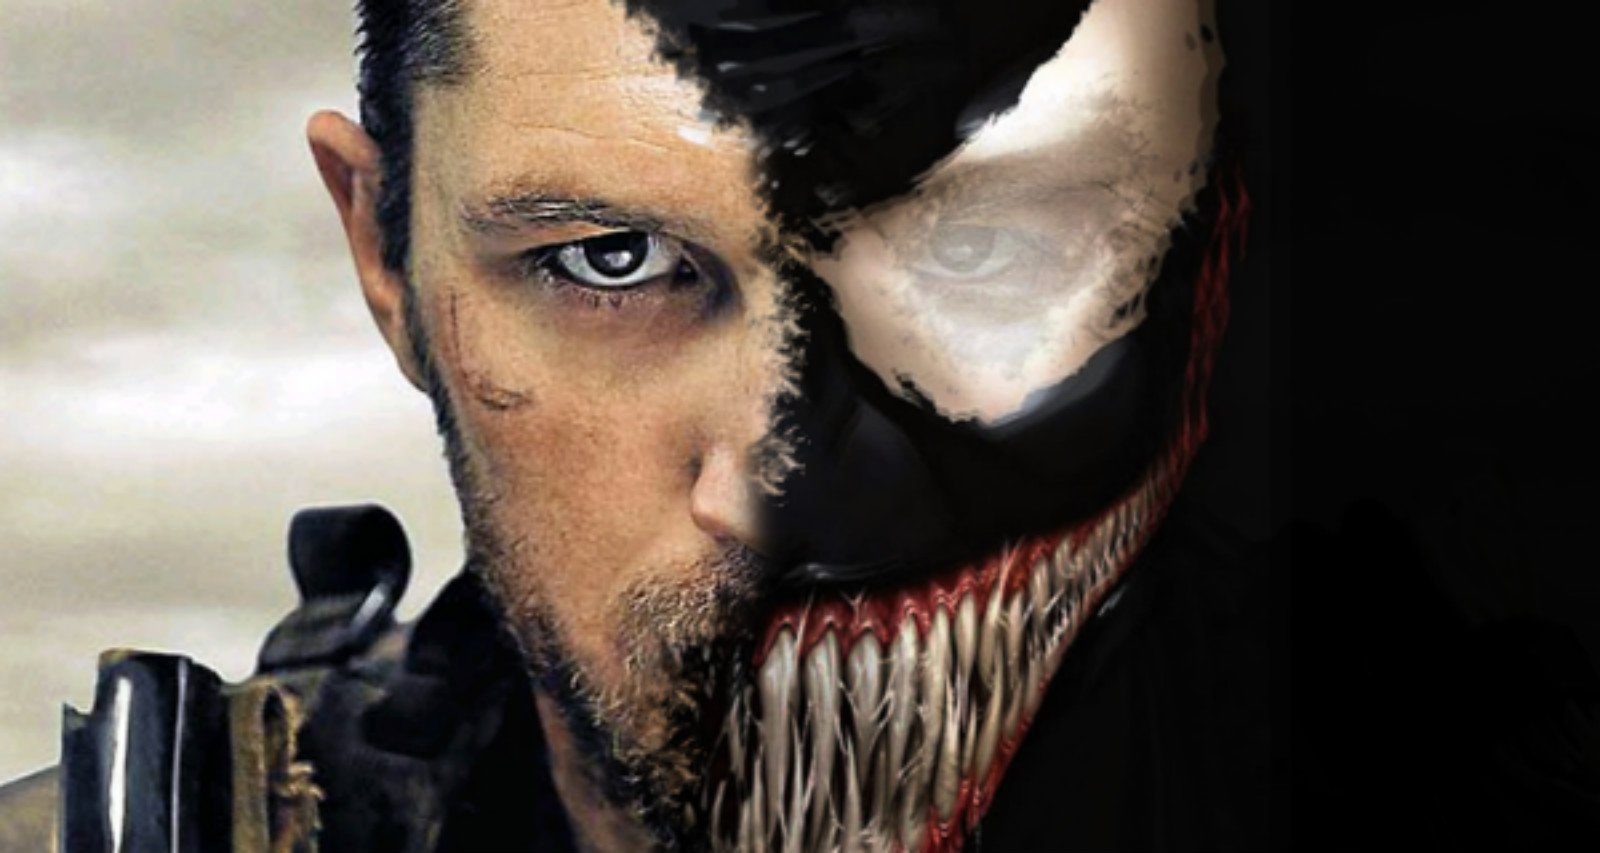 Venom Producer Says Tom Hardy's Performance Is Something Special